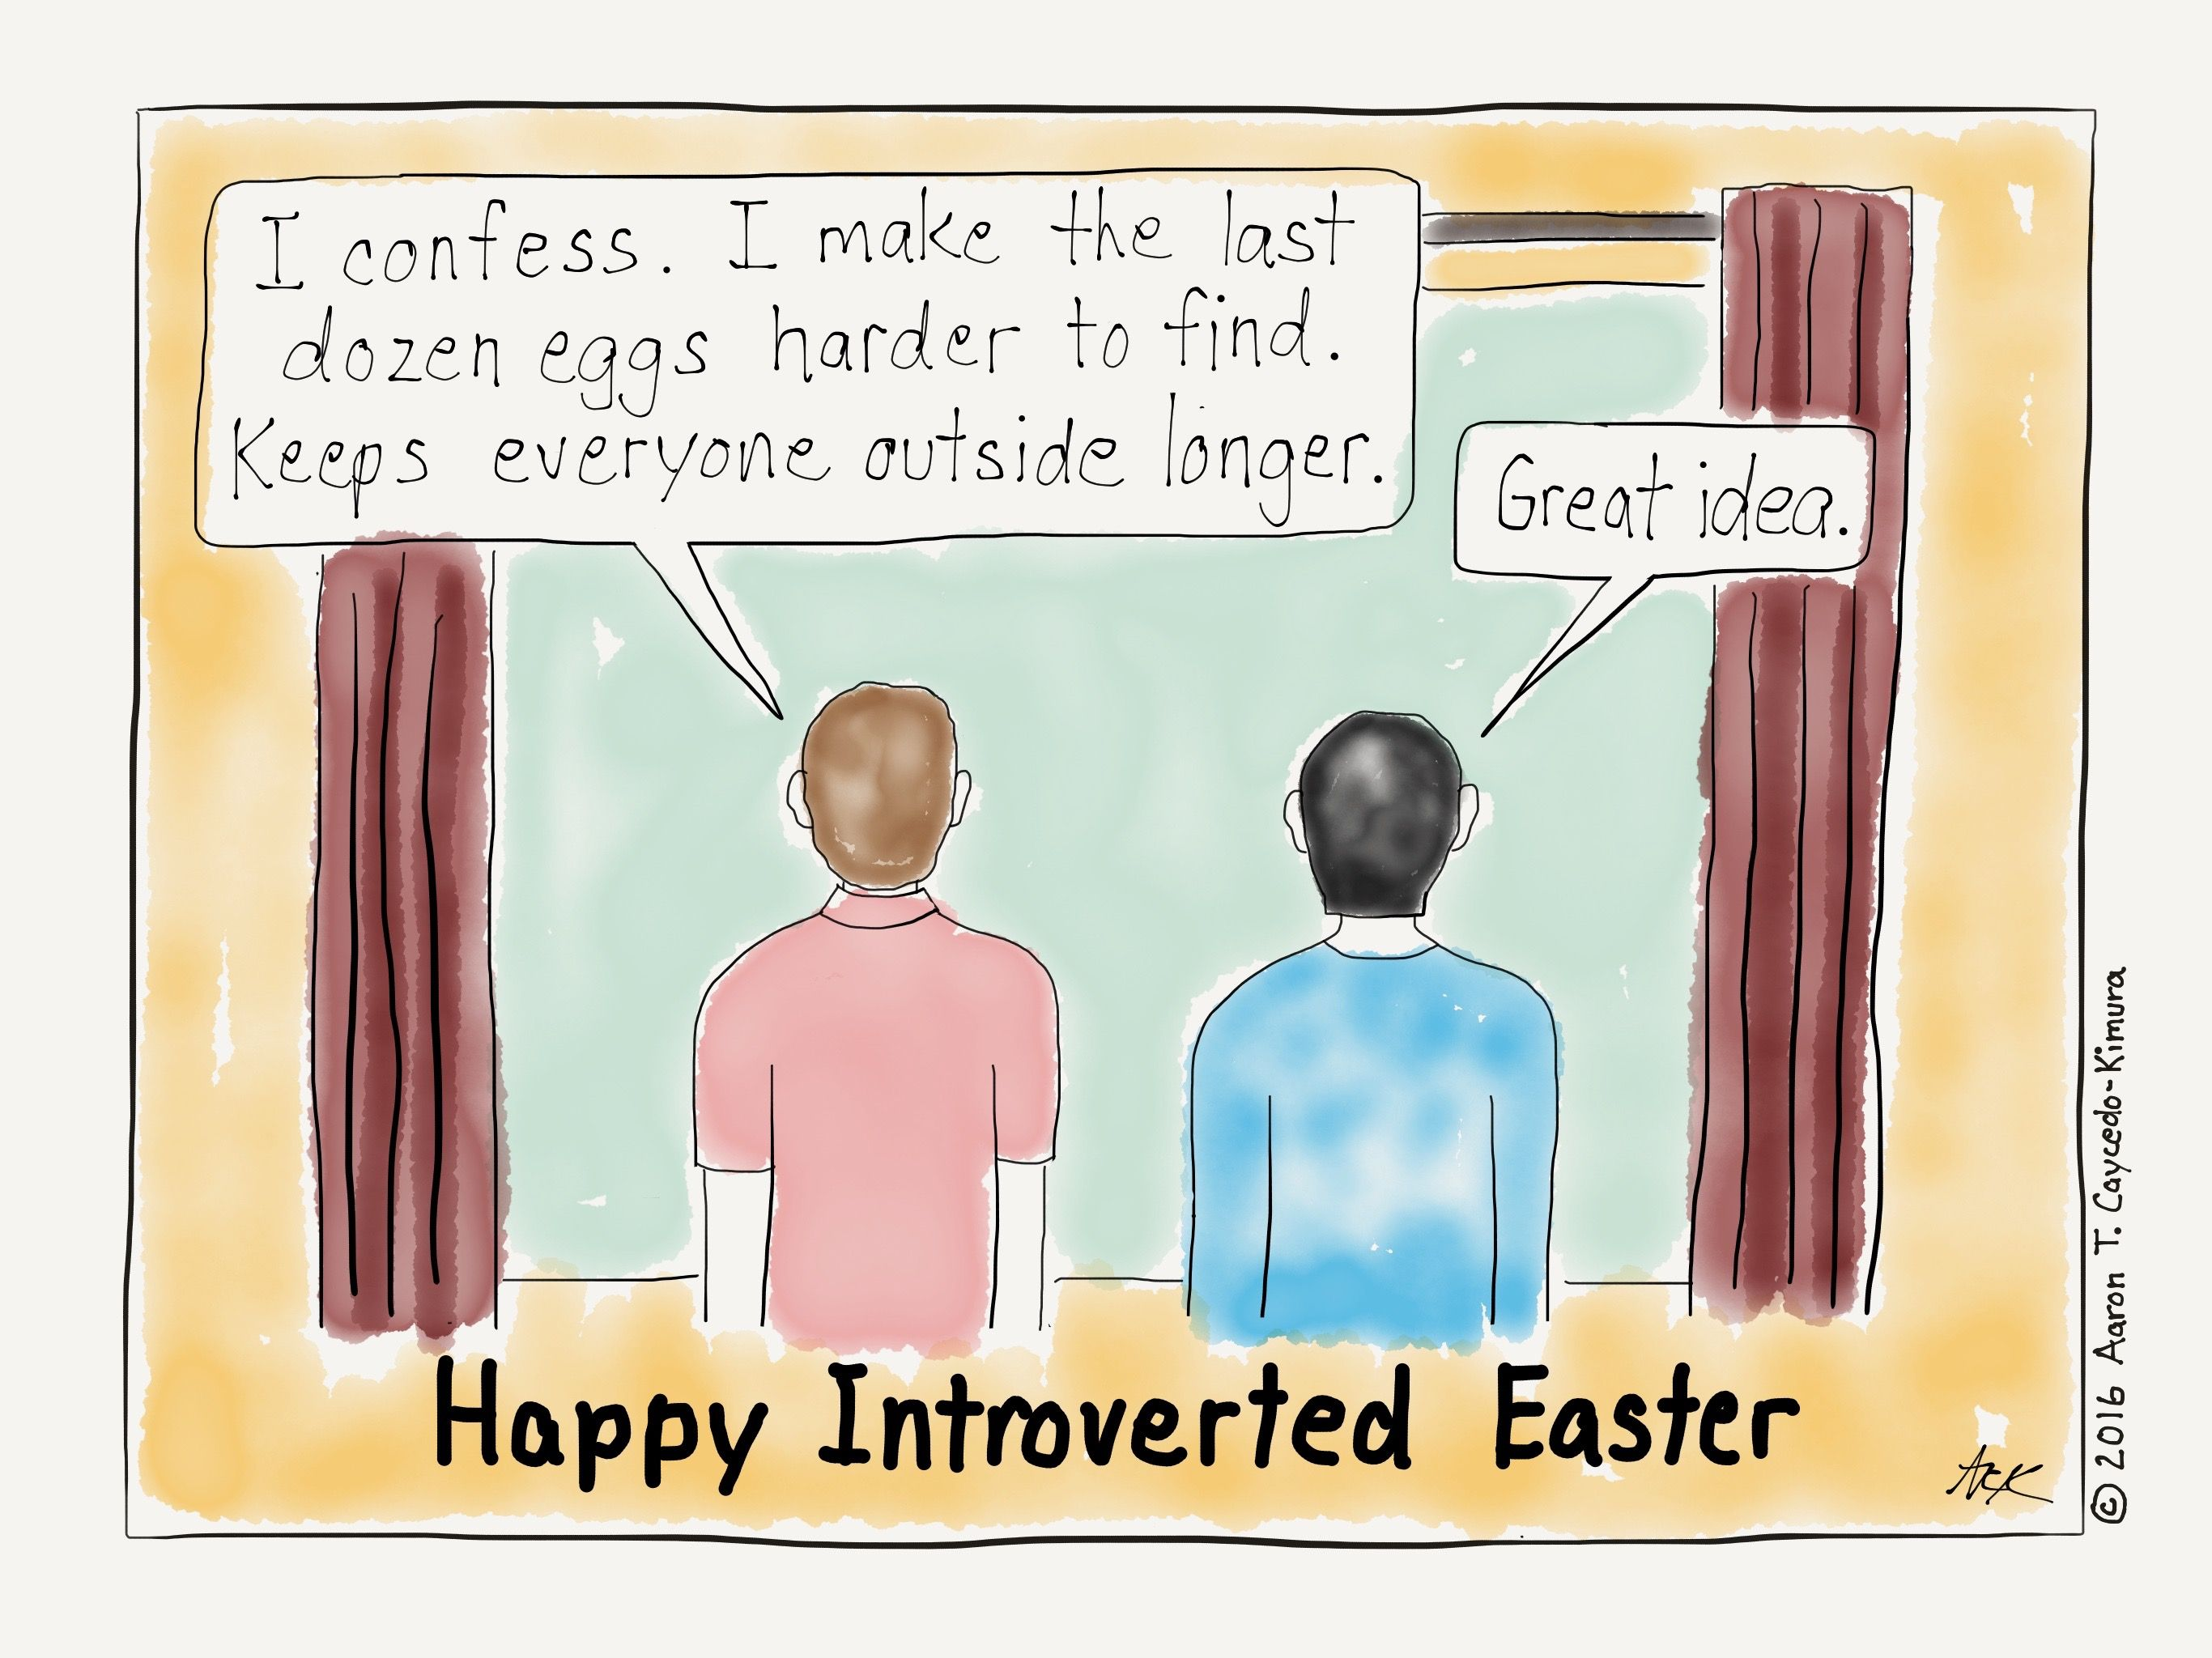 11+ Introvert cartoons ideas in 2021